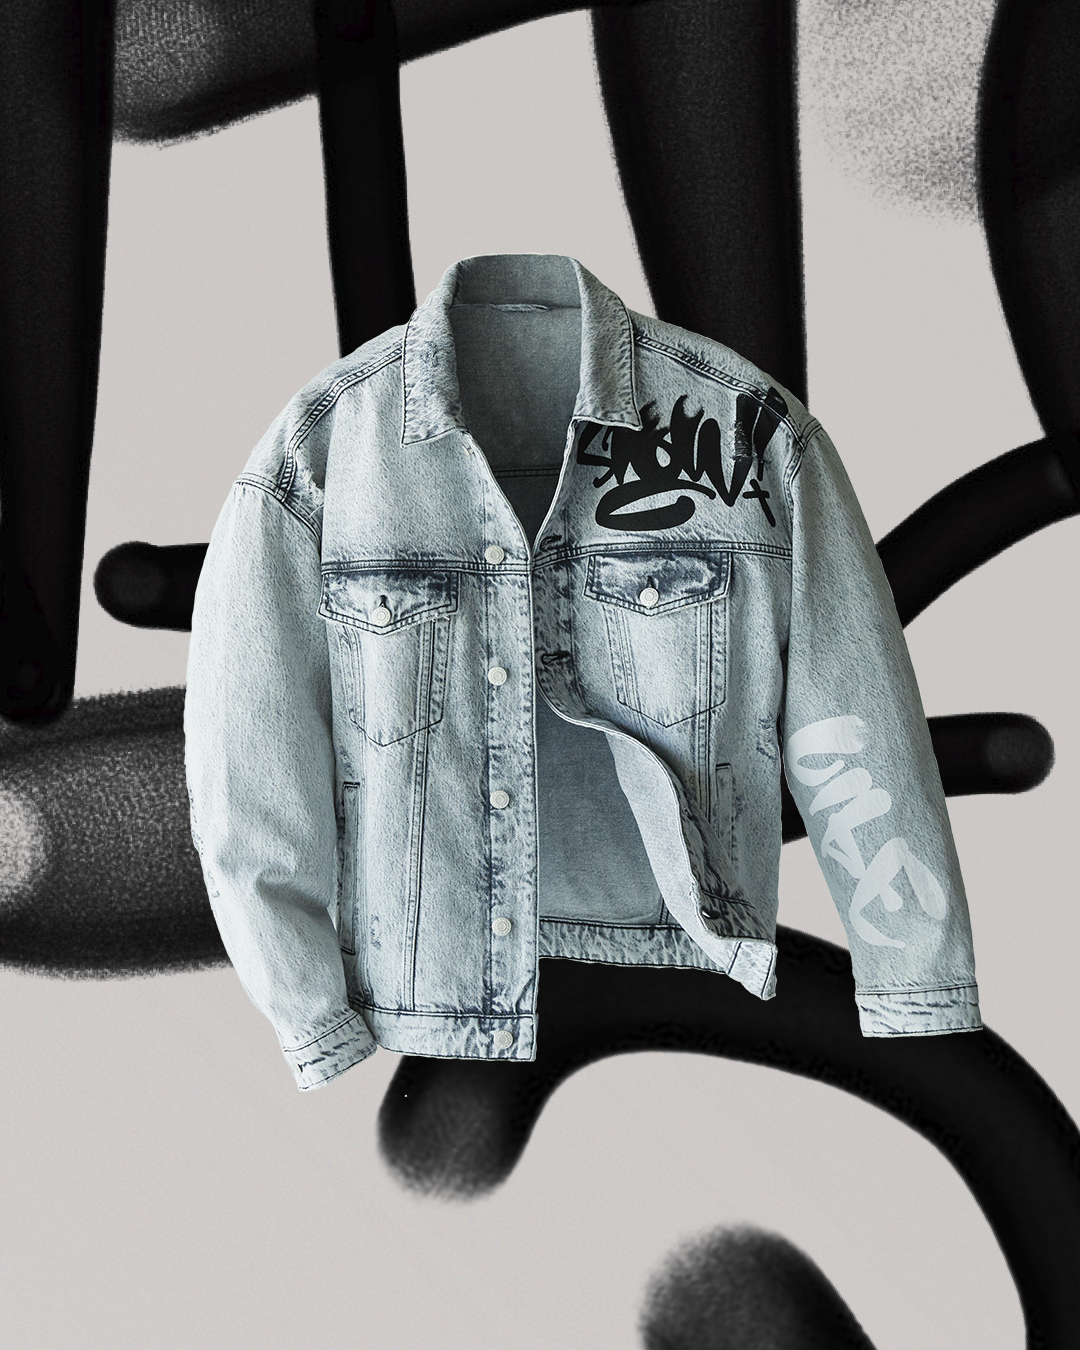 Bershka DENIM GRAFFITI (5).jpg